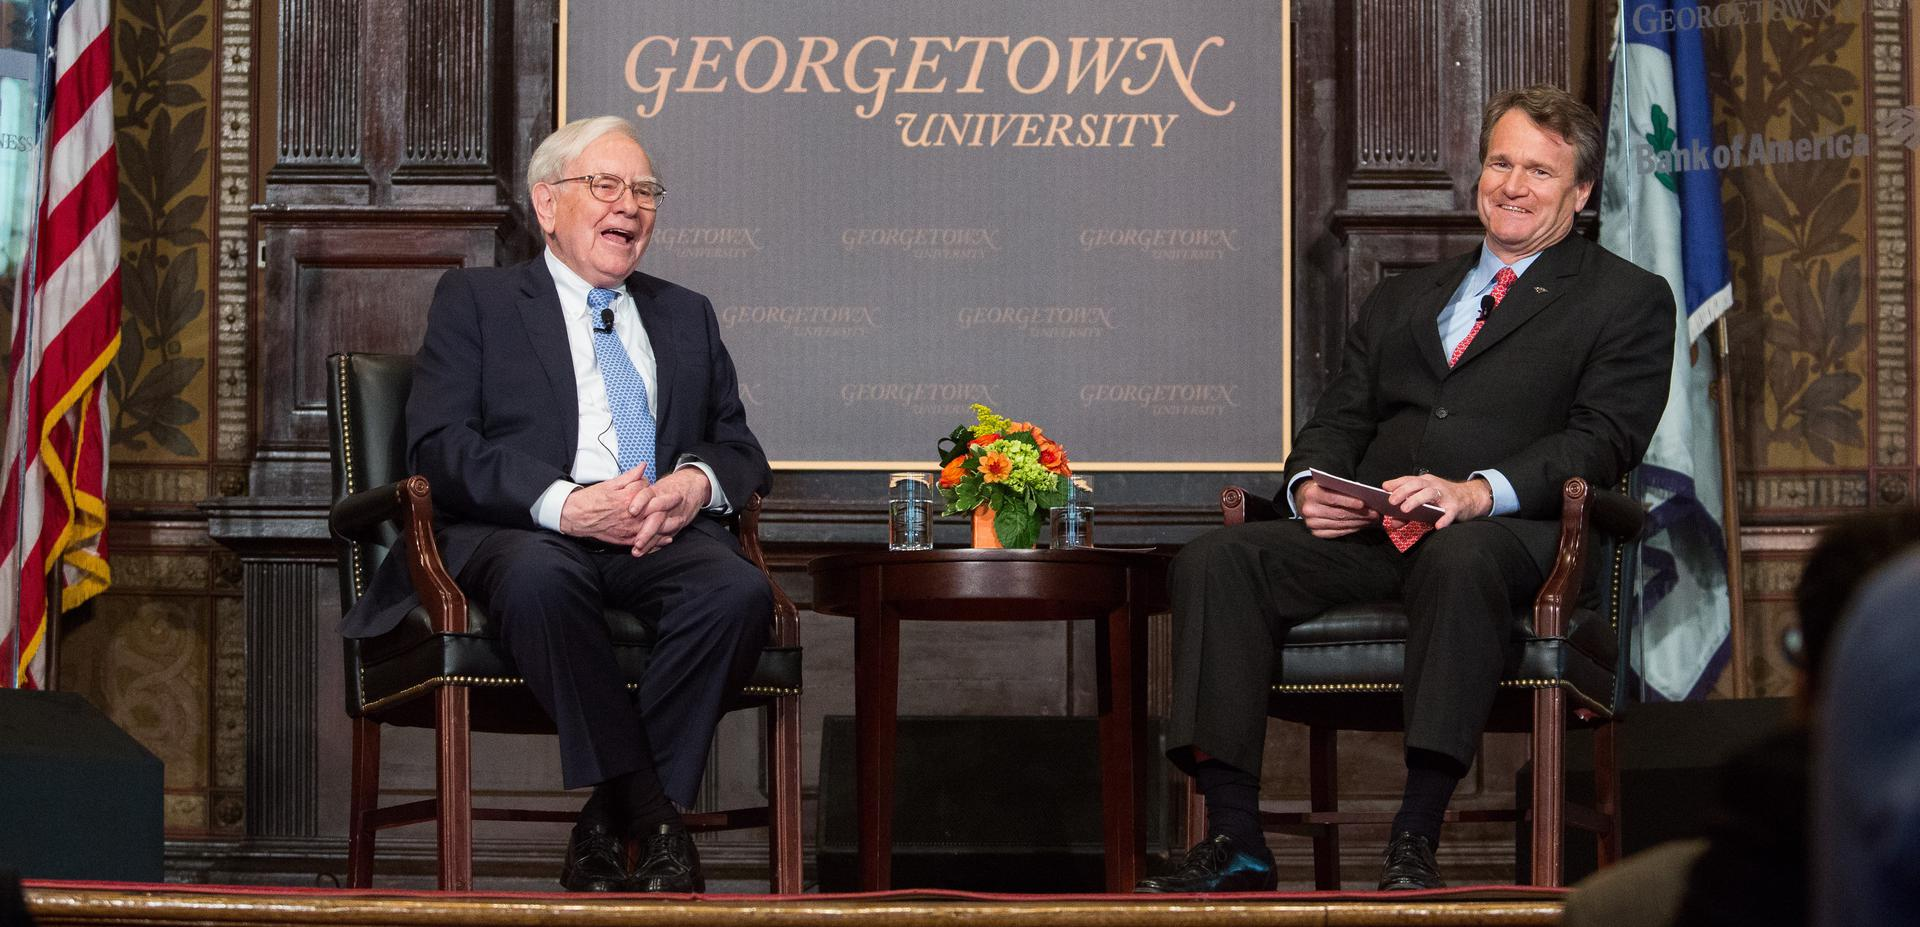 Warren Buffett speaks with Bank of America CEO Brian Moynihan in Gaston Hall at Georgetown University, September 19, 2013 in Washington, DC.  (Photo by Drew Angerer/Getty Images)